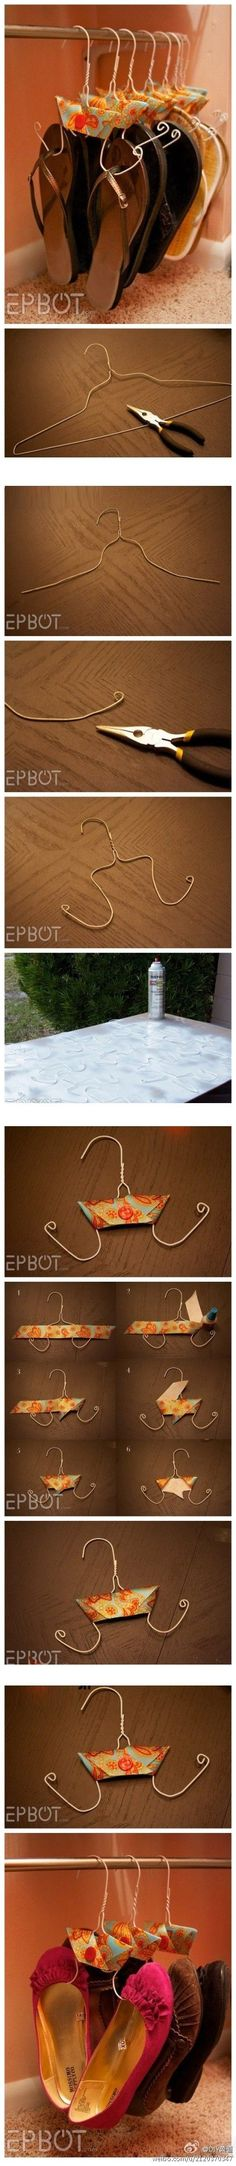 Clothes Hangers into shoe hangers and 30 other DIY ideas